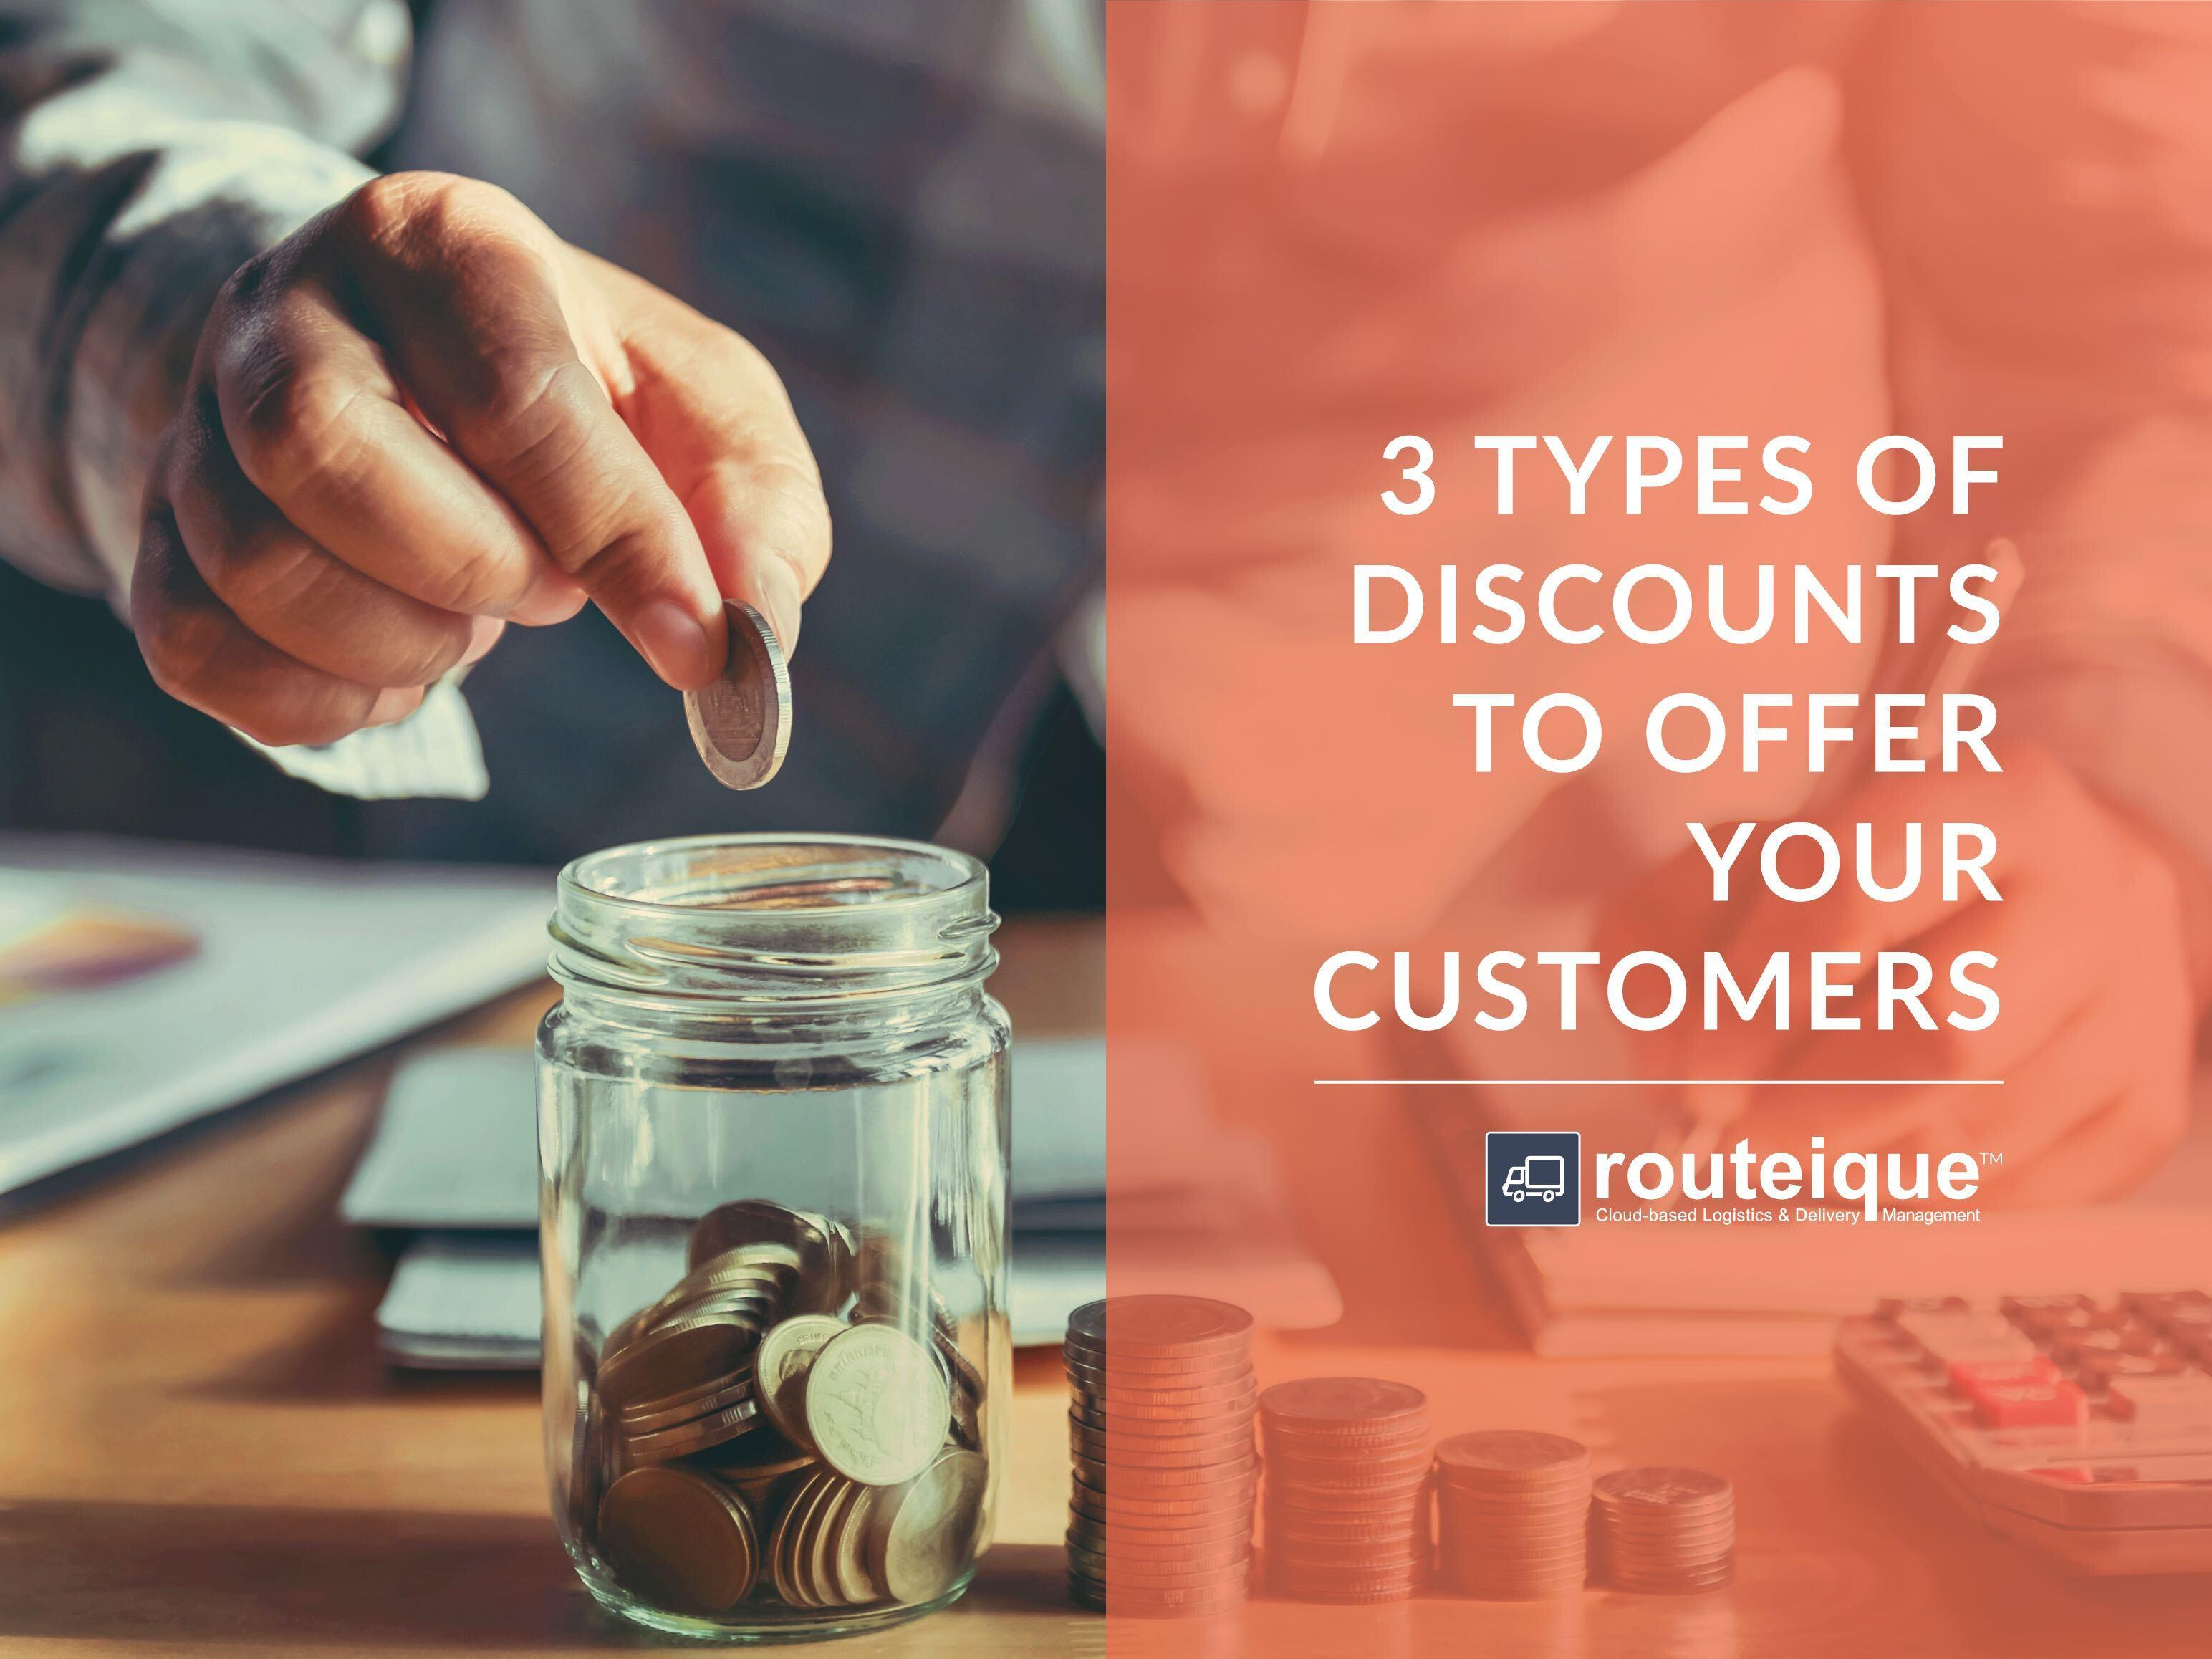 3 Types of Discounts To Give Customers